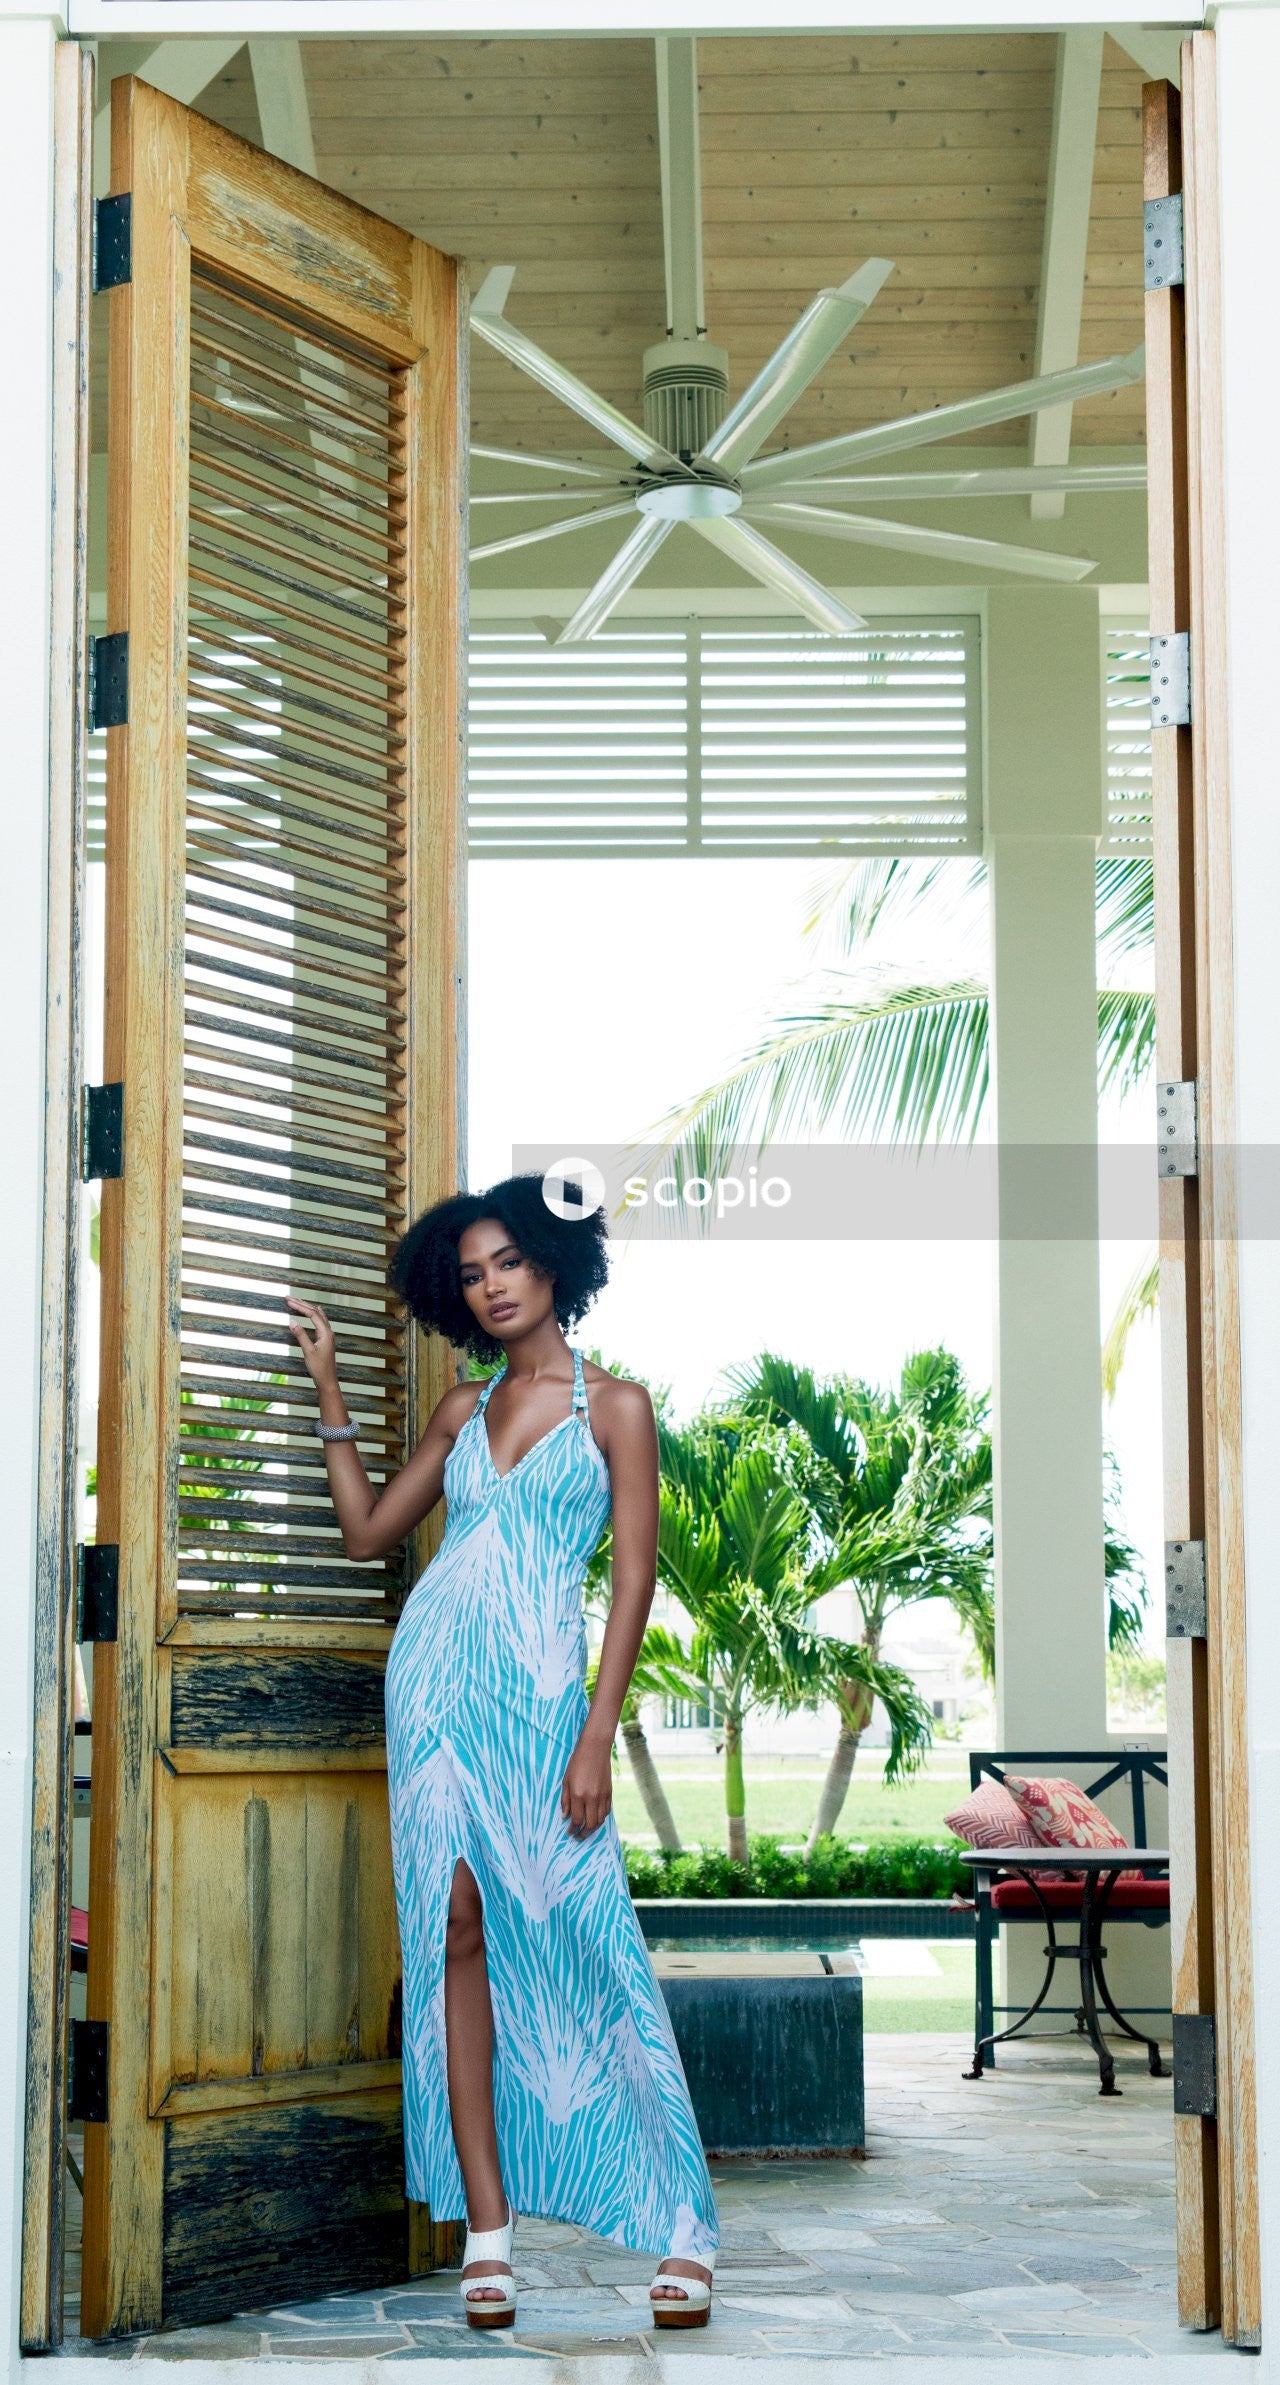 Woman in blue sleeveless dress standing near brown wooden door